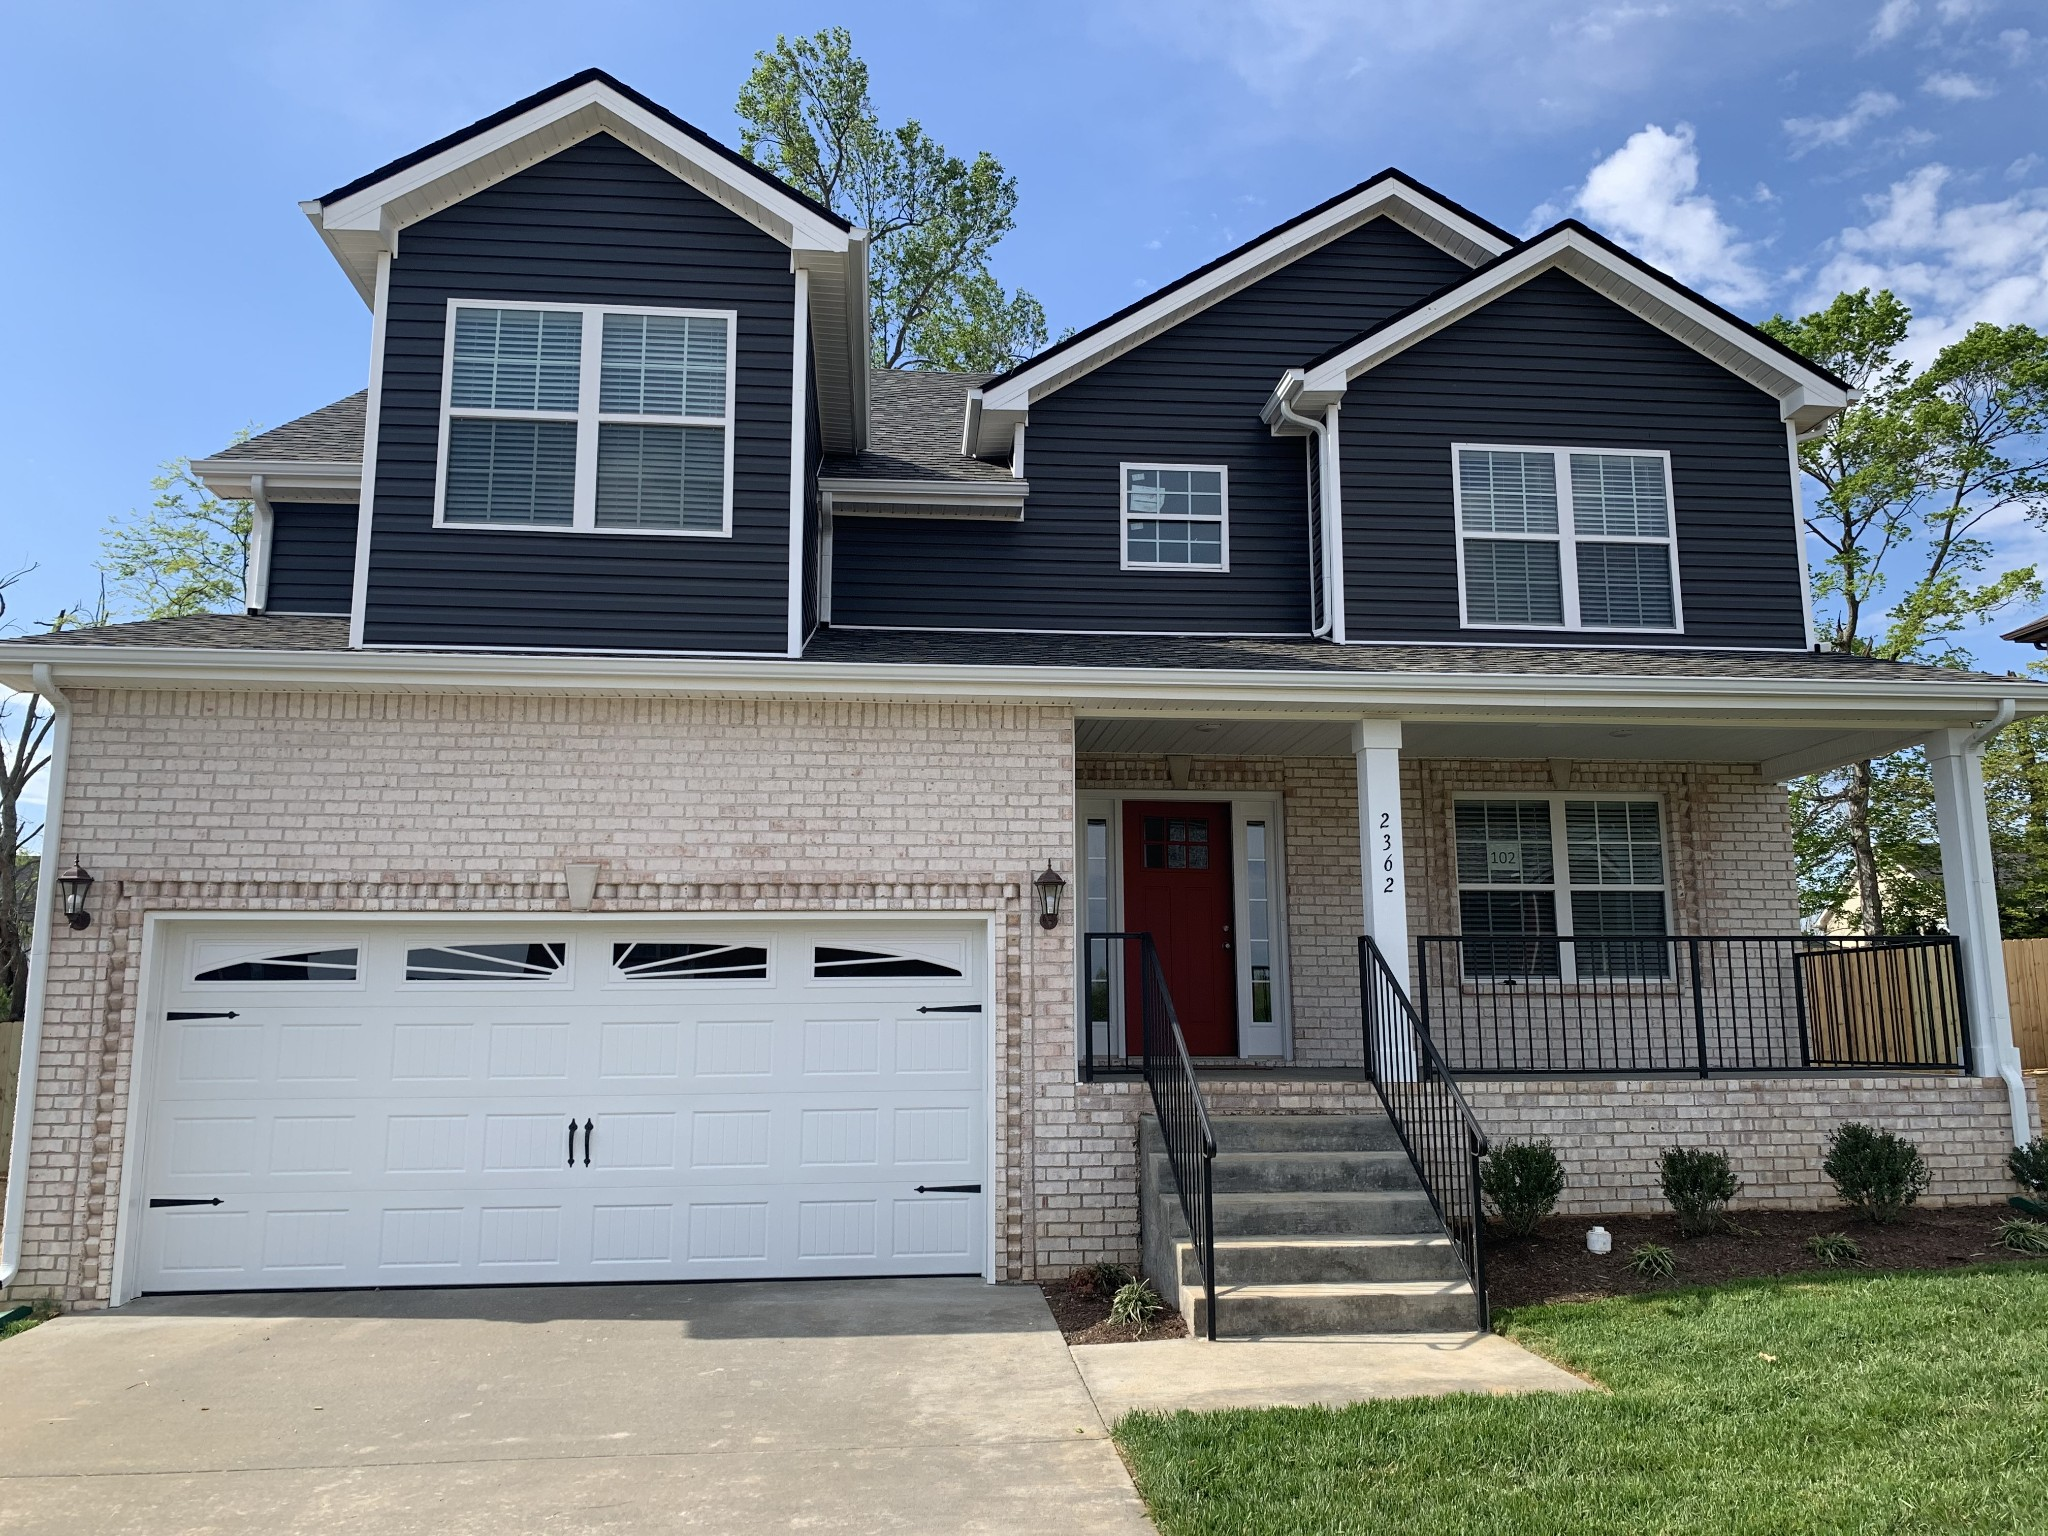 102 ANDRSON PLACE, Clarksville, TN 37042 - Clarksville, TN real estate listing